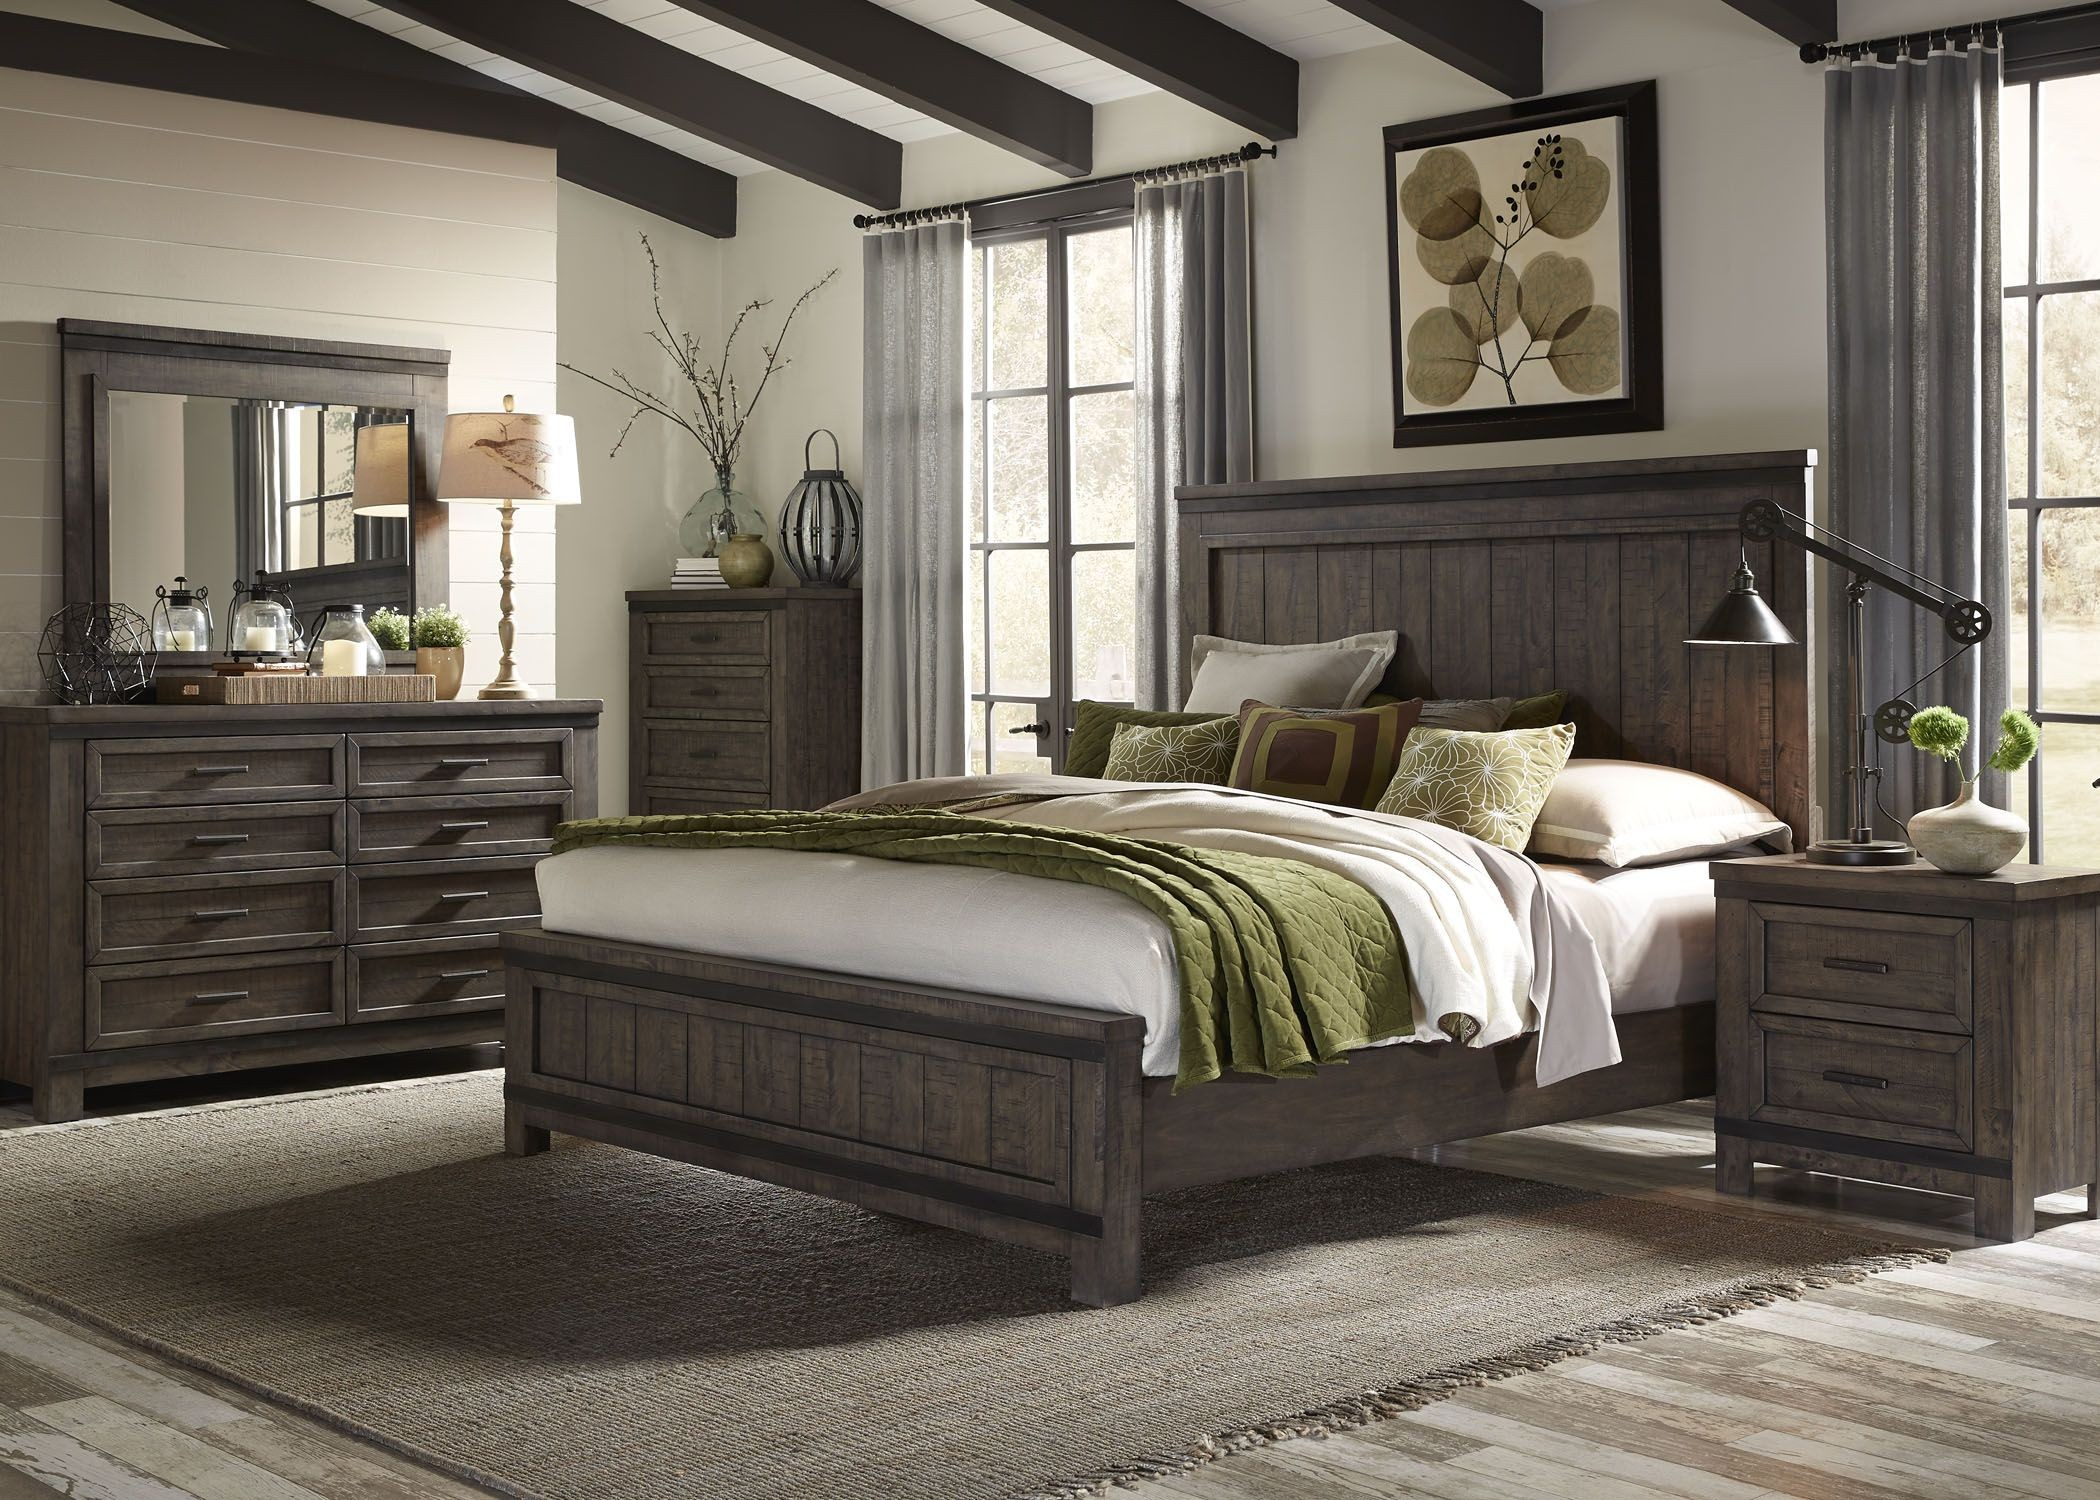 Thornwood Hills Rock Beaten Gray Panel Bedroom Set from Liberty ...